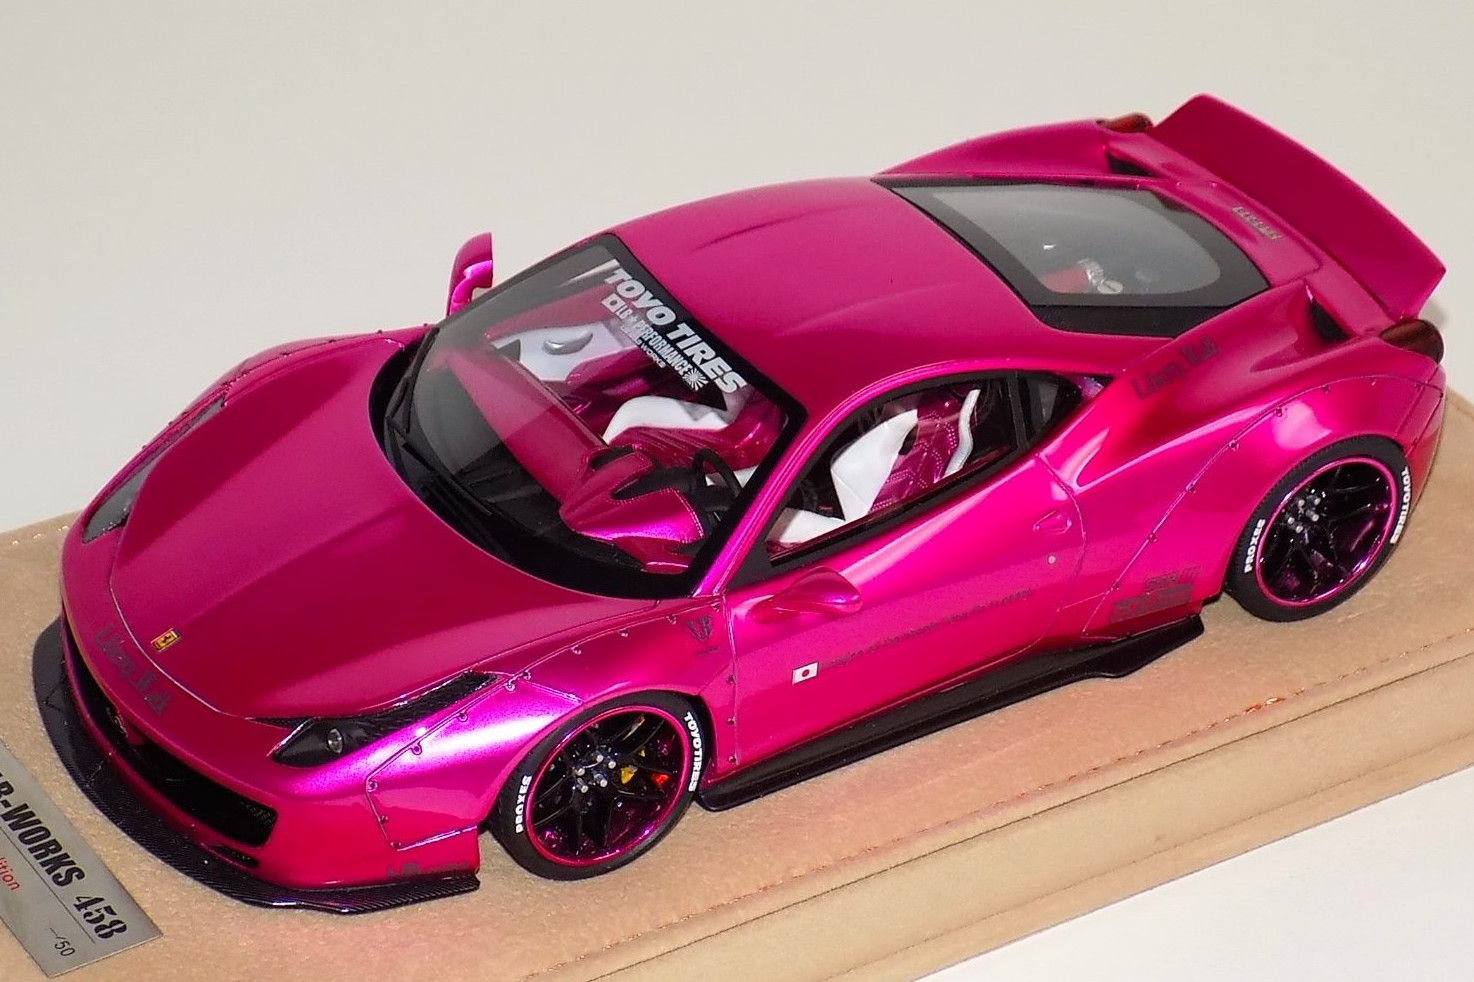 Liberty Walk 1/18 LB★WORKS フェラーリ 458 イタリア Flash Pink Version A 内装 50台限定